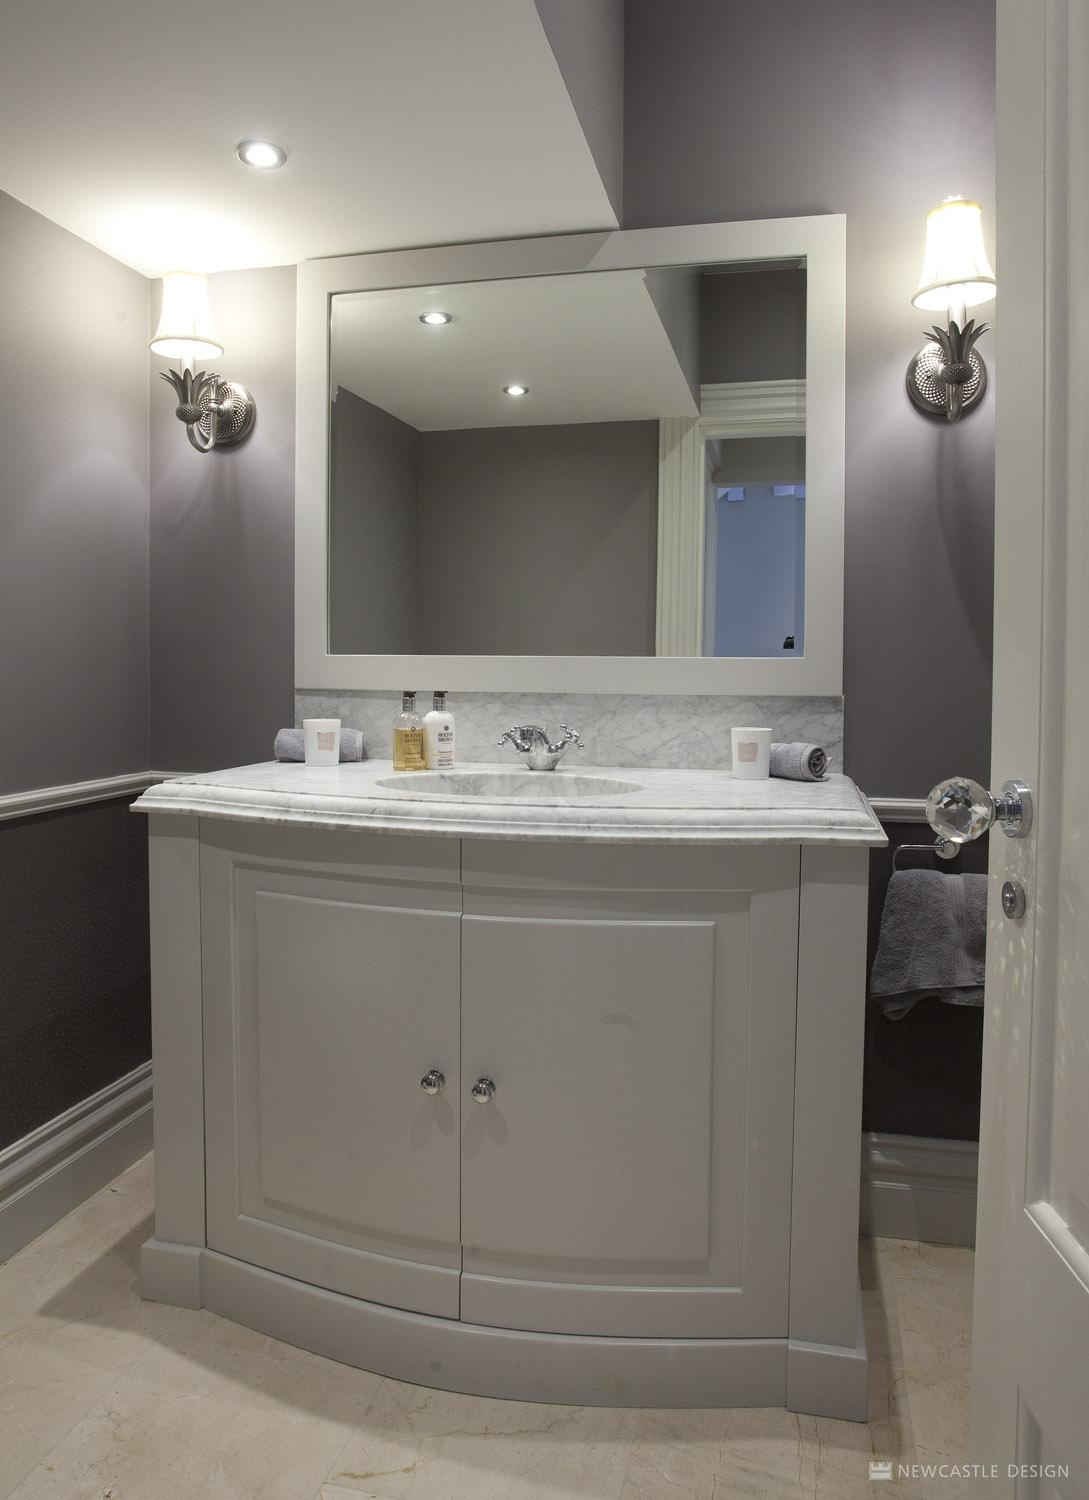 Amusing 10 custom bathroom vanities newcastle inspiration for Bathroom design jobs newcastle